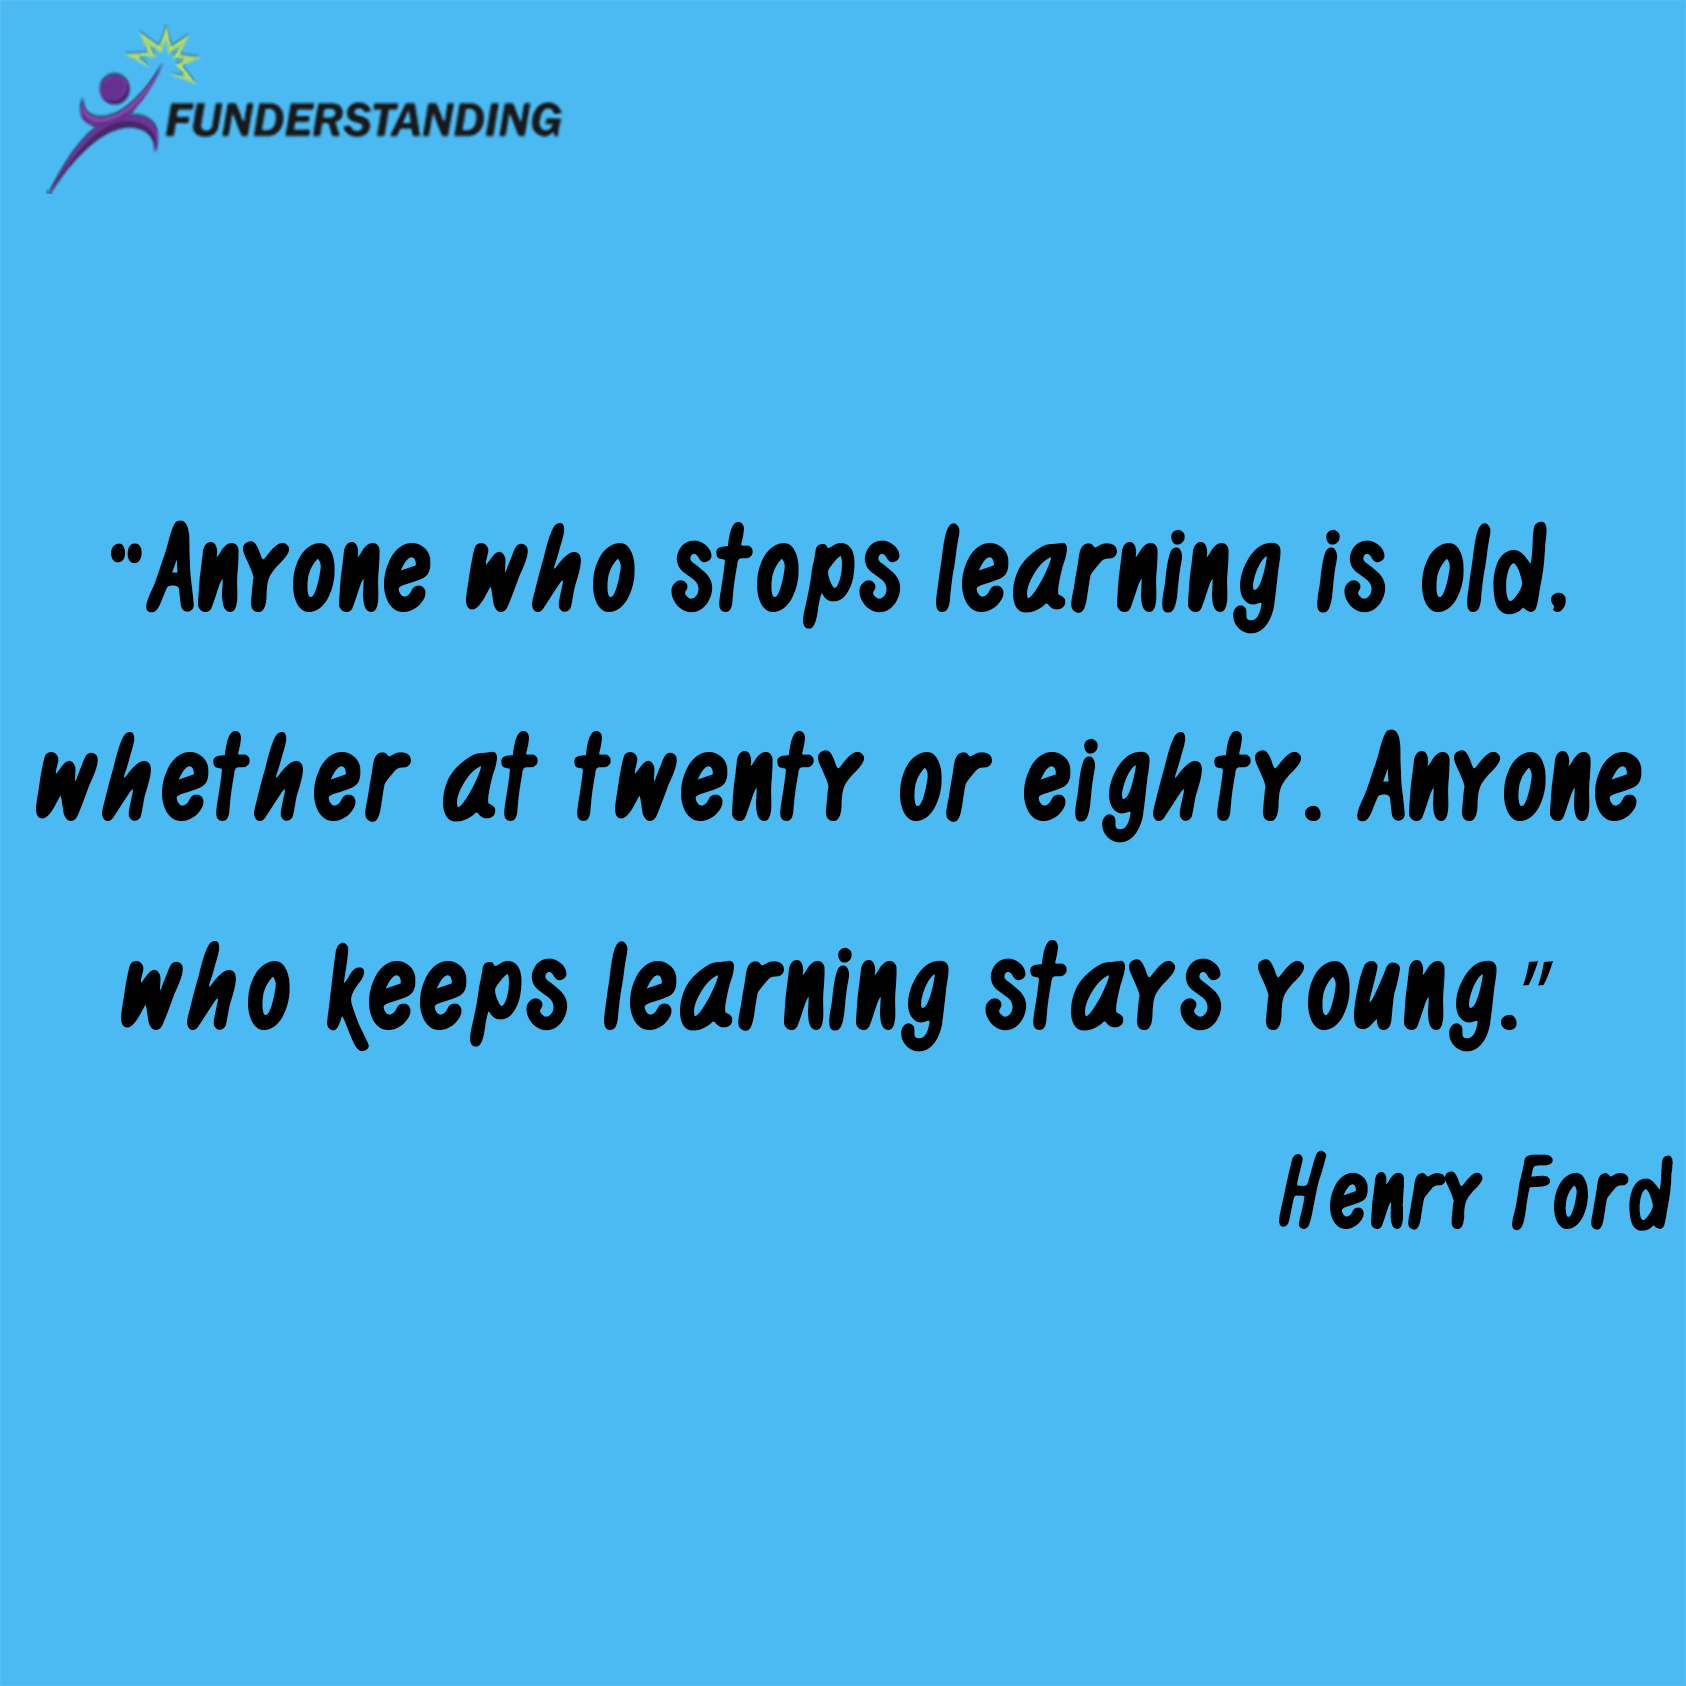 Quotes On Learning Custom Quote Of The Day  Funderstanding  Are You Still Young  A